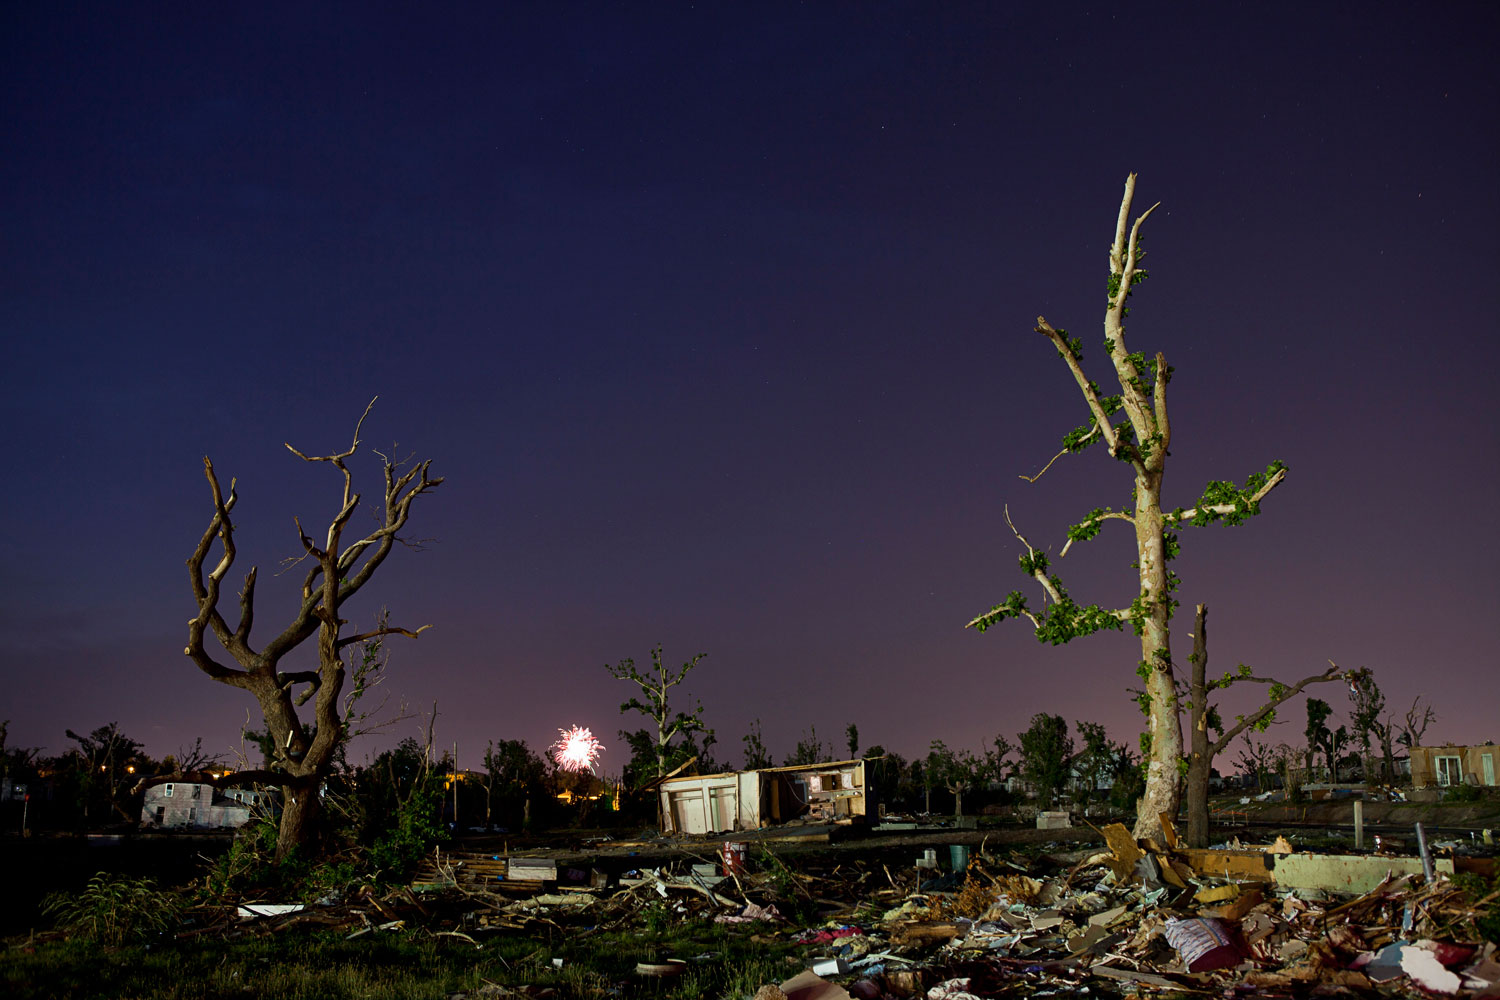 July 2, 2011. In tornado-ravaged Joplin, Mo., residents light July4 fireworks amid the ruins of their community. The May twister there—the deadliest U.S. tornado since 1947—killed 157 people.